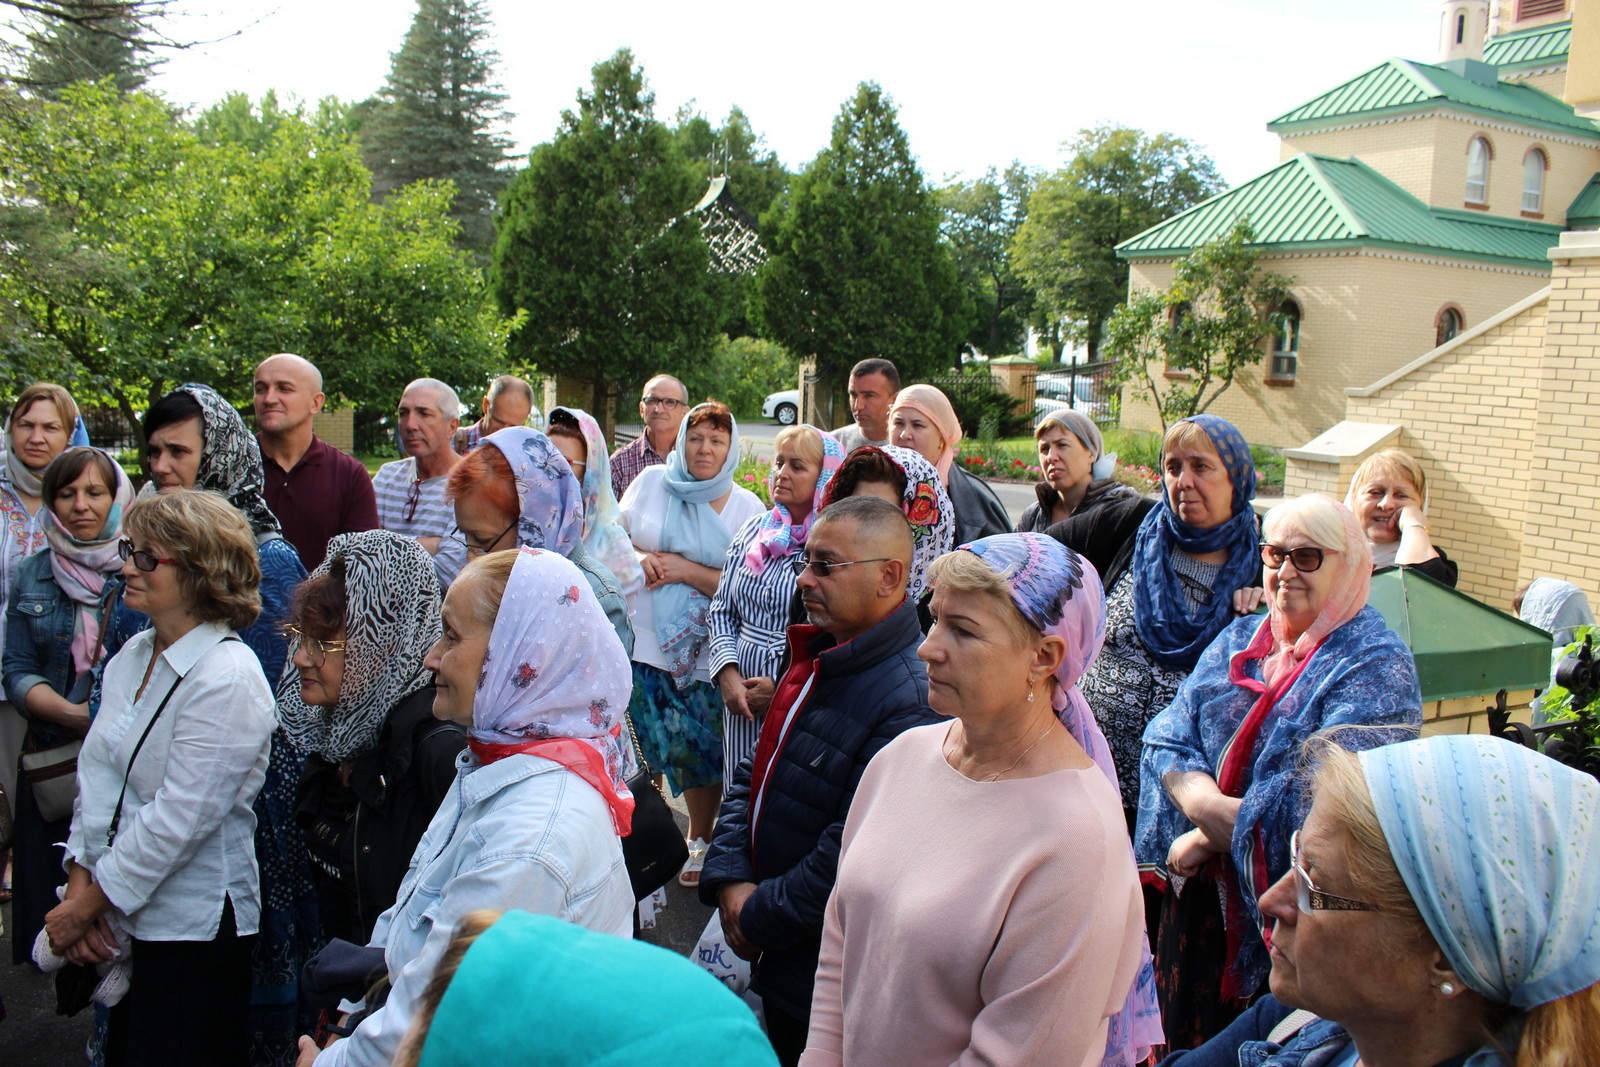 St-Trinity-monastery_31-Aug-2019_1st-day_68